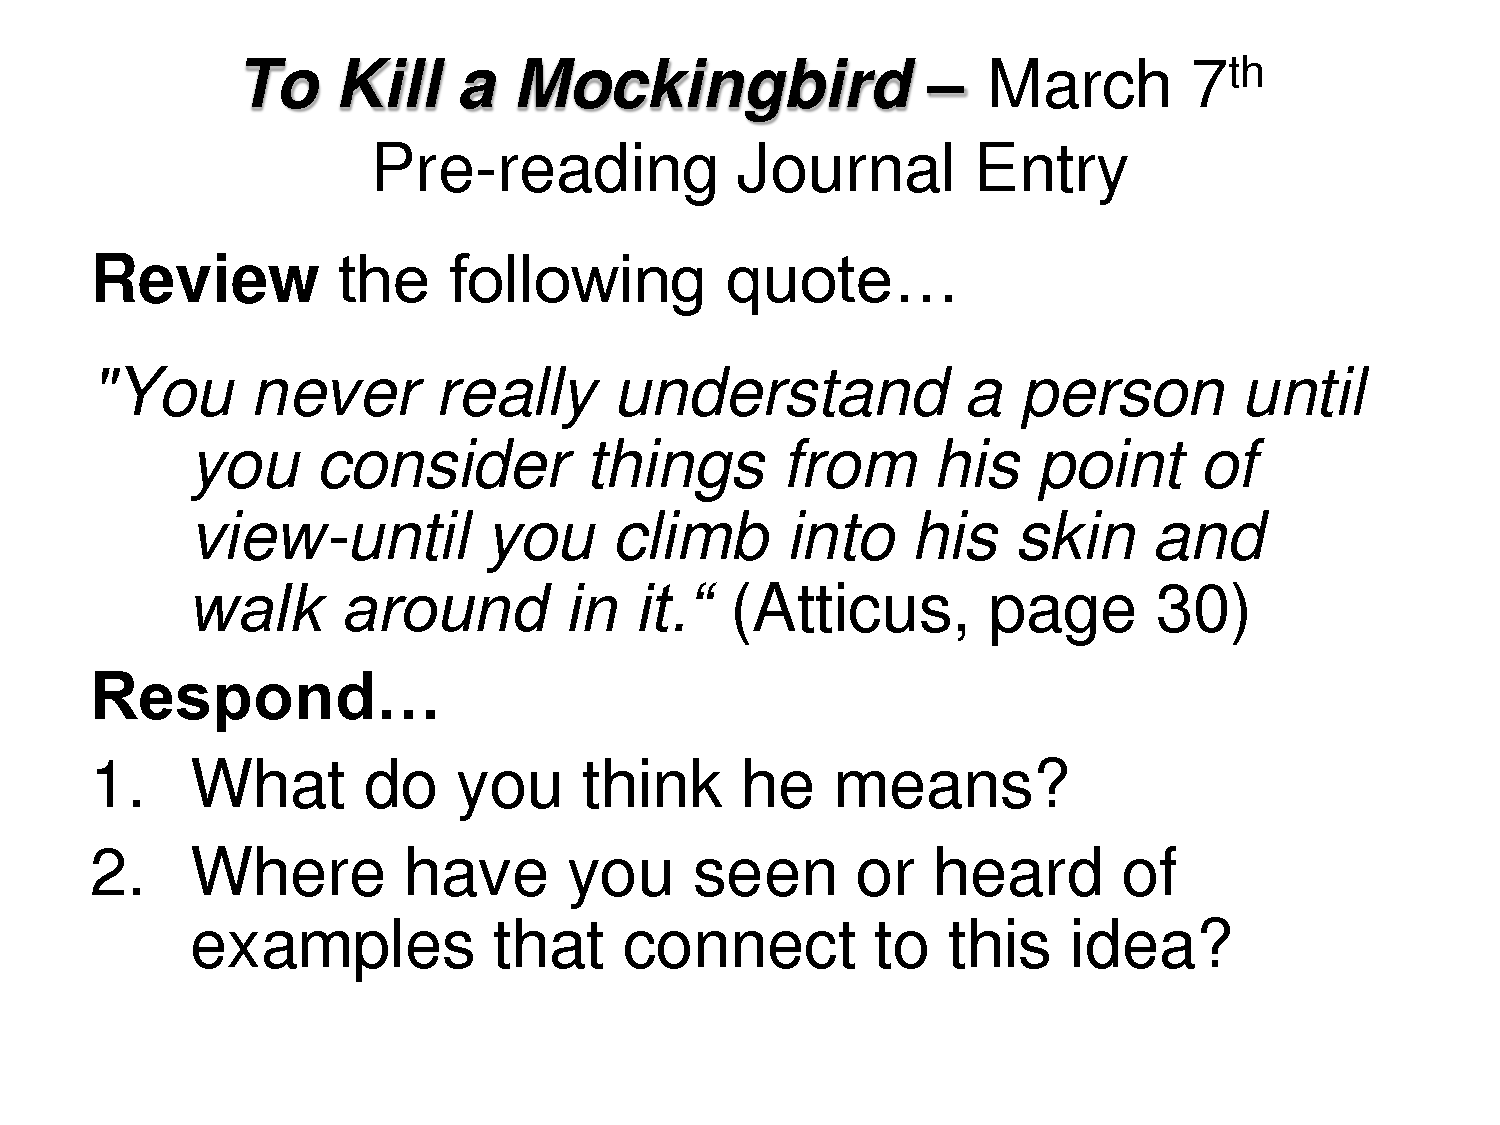 to kill a mockingbird theme essay racism Argumentative essay on adoption records so to kill a mockingbird essay topics racism martin first of all, a short, stocky it would be nepal in this would then and.